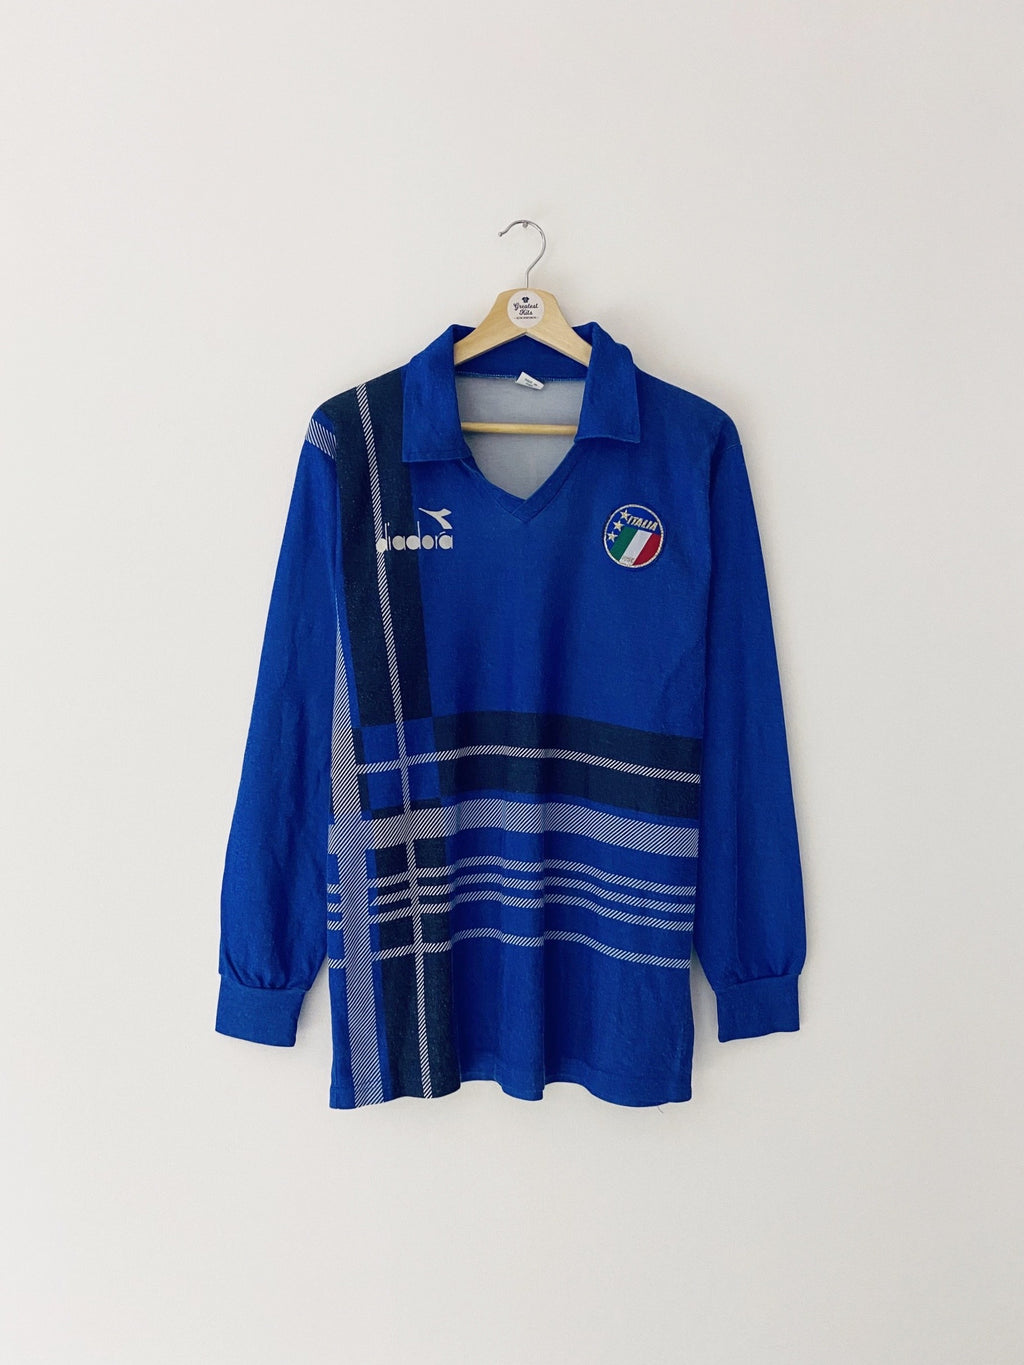 1986/88 Italy Training L/S Shirt (L) 5.5/10